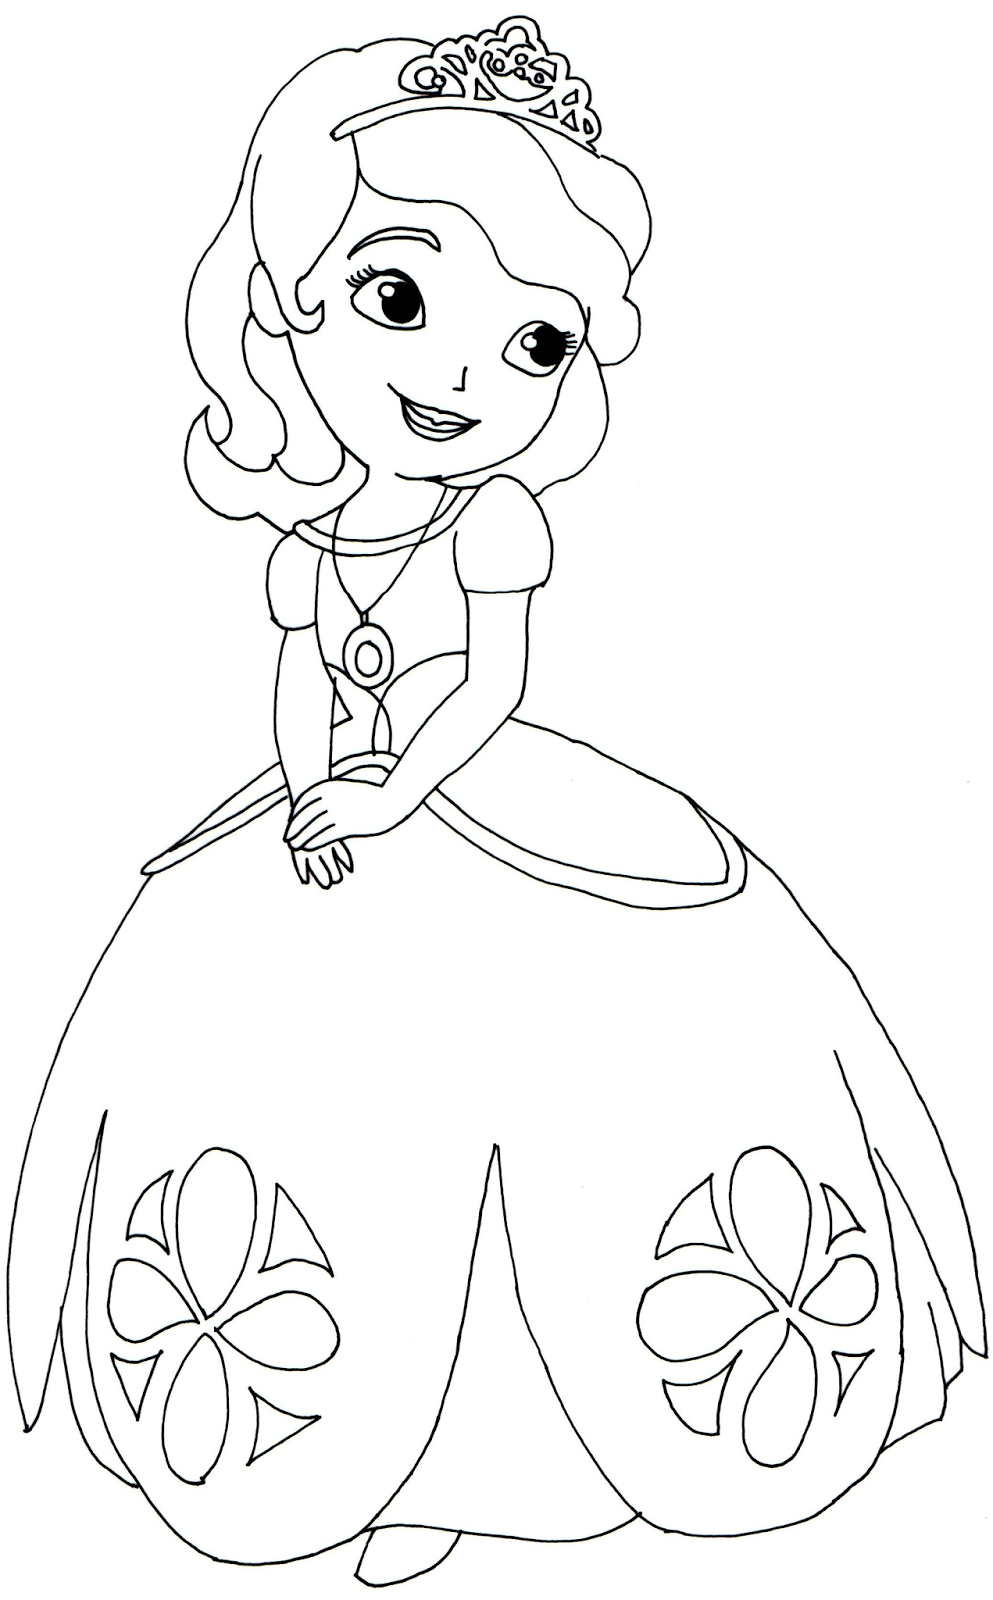 Sofia The First Coloring Pages To Print Sofia The Princess Butterfly Free Coloring Sheets